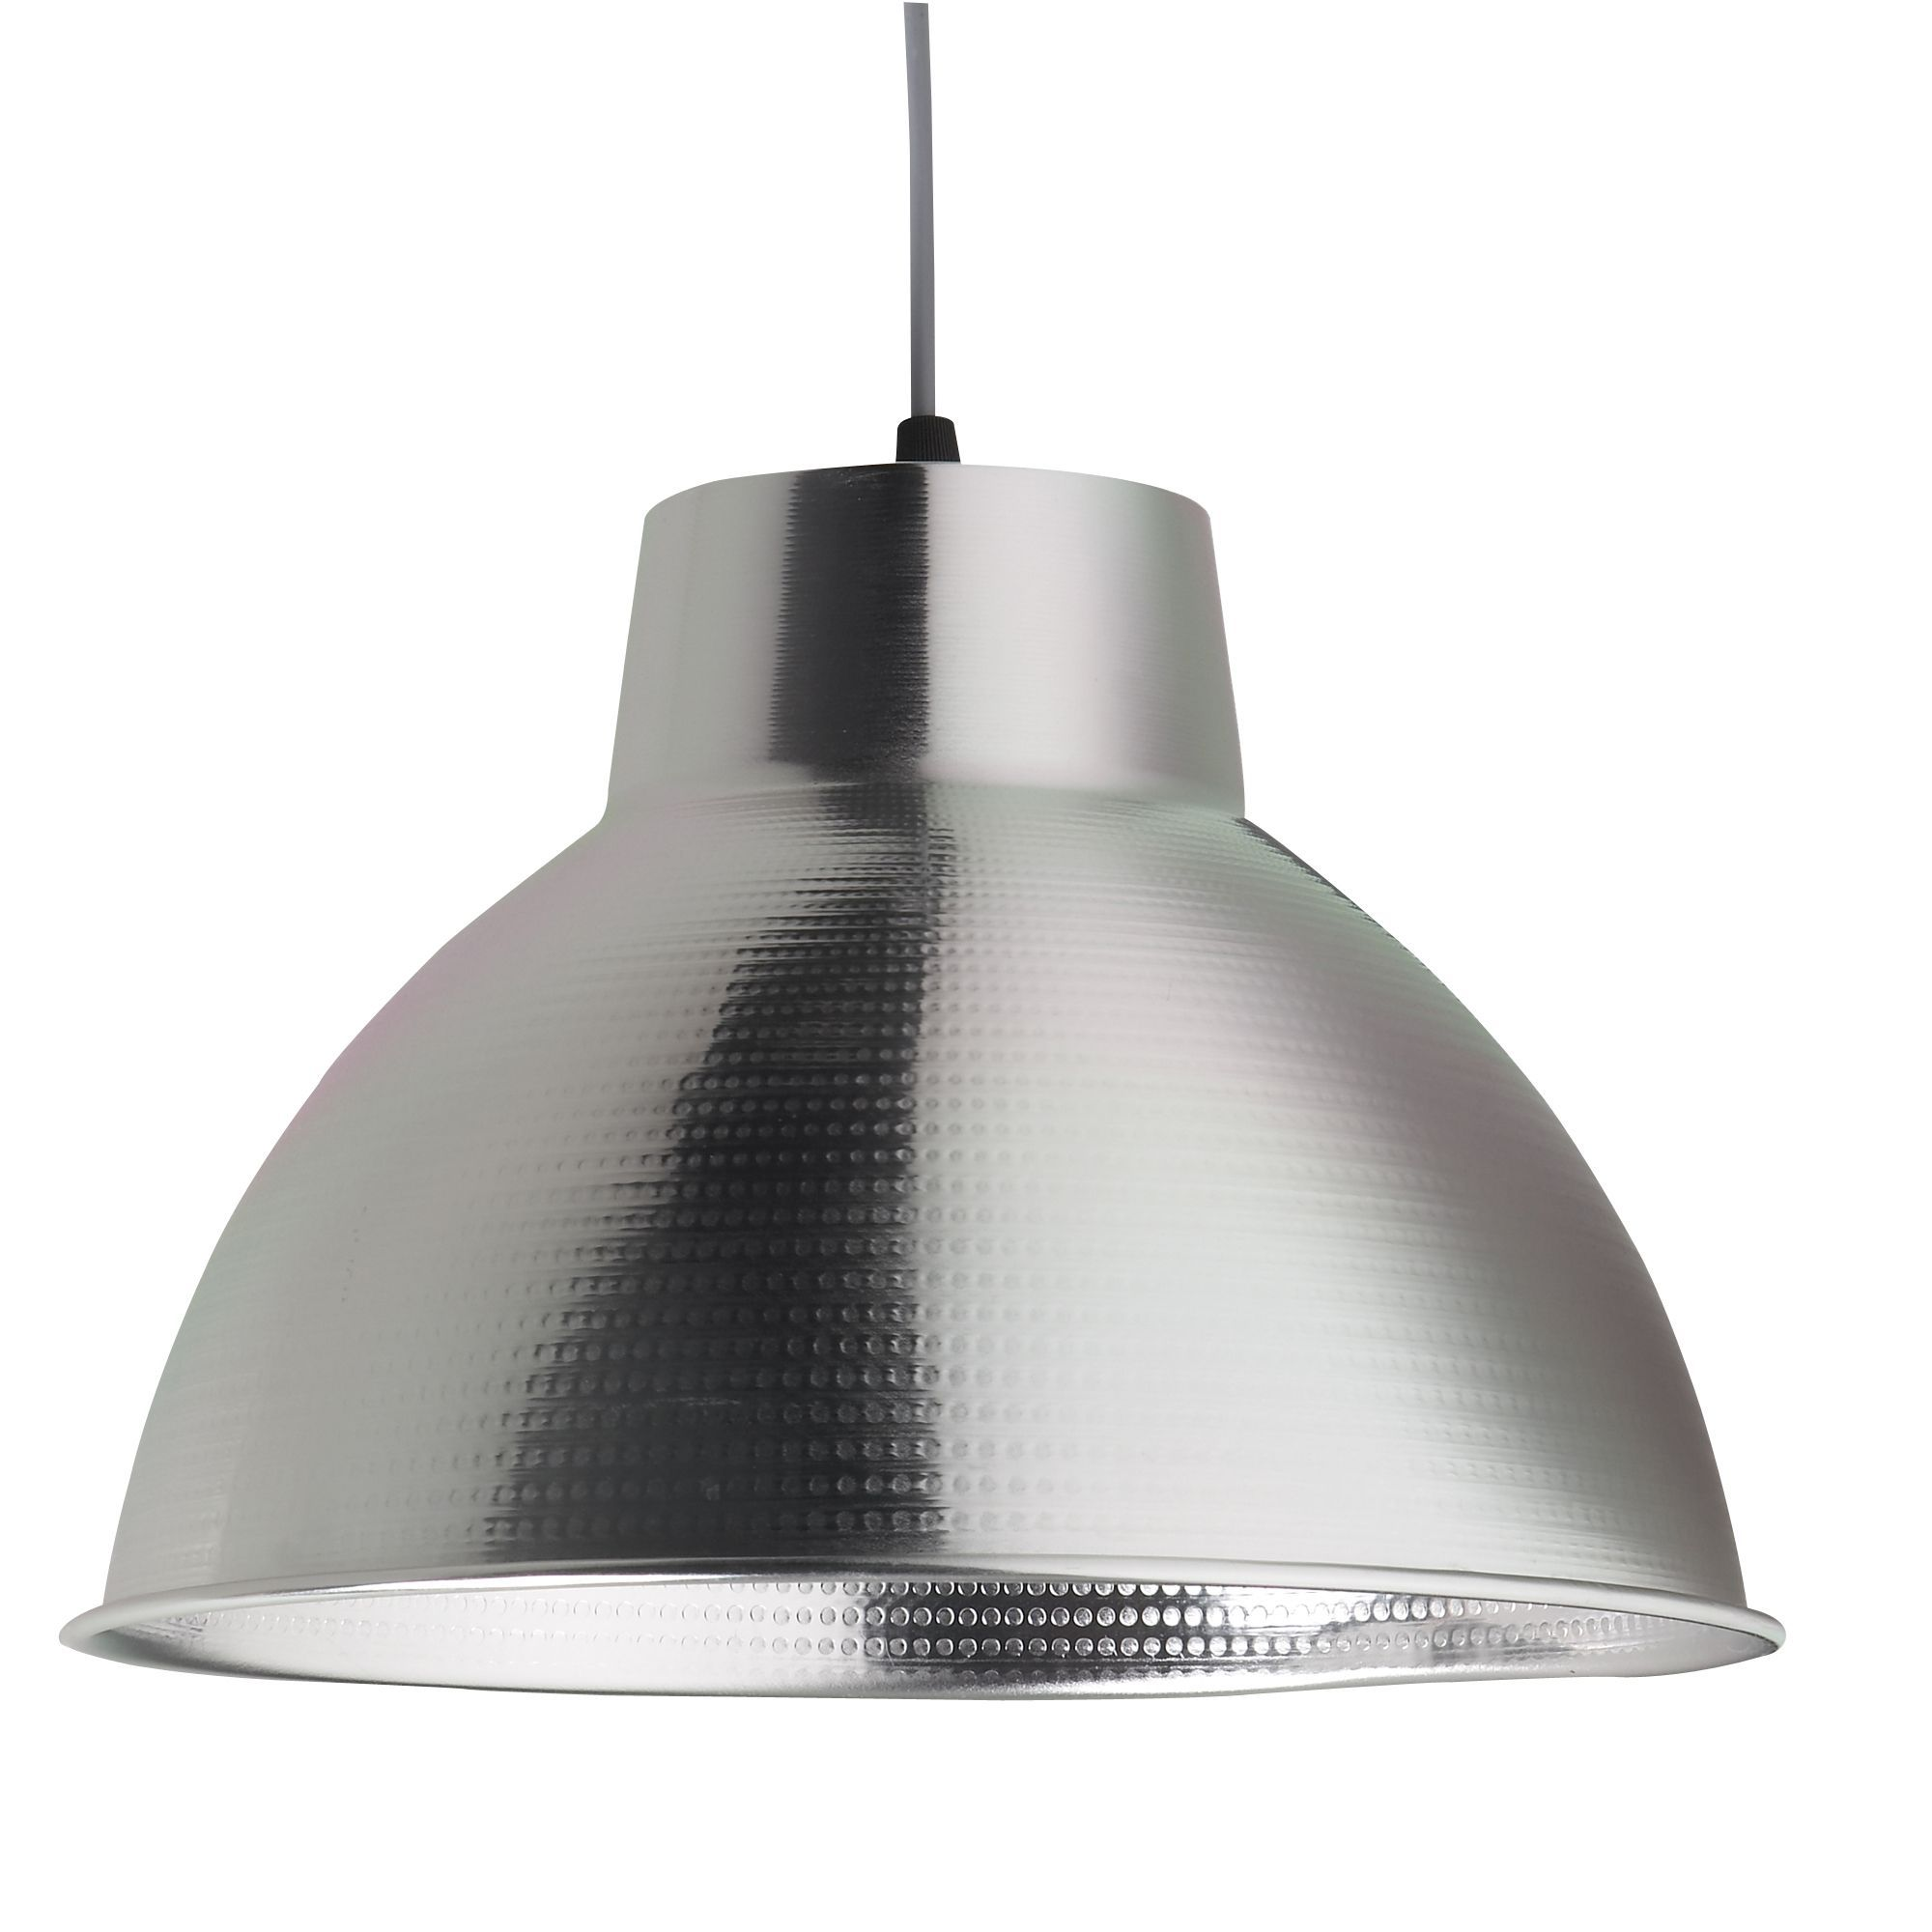 Suspension Luminaire Alinea Suspension En Métal Gris Box Luminaire Les Suspensions